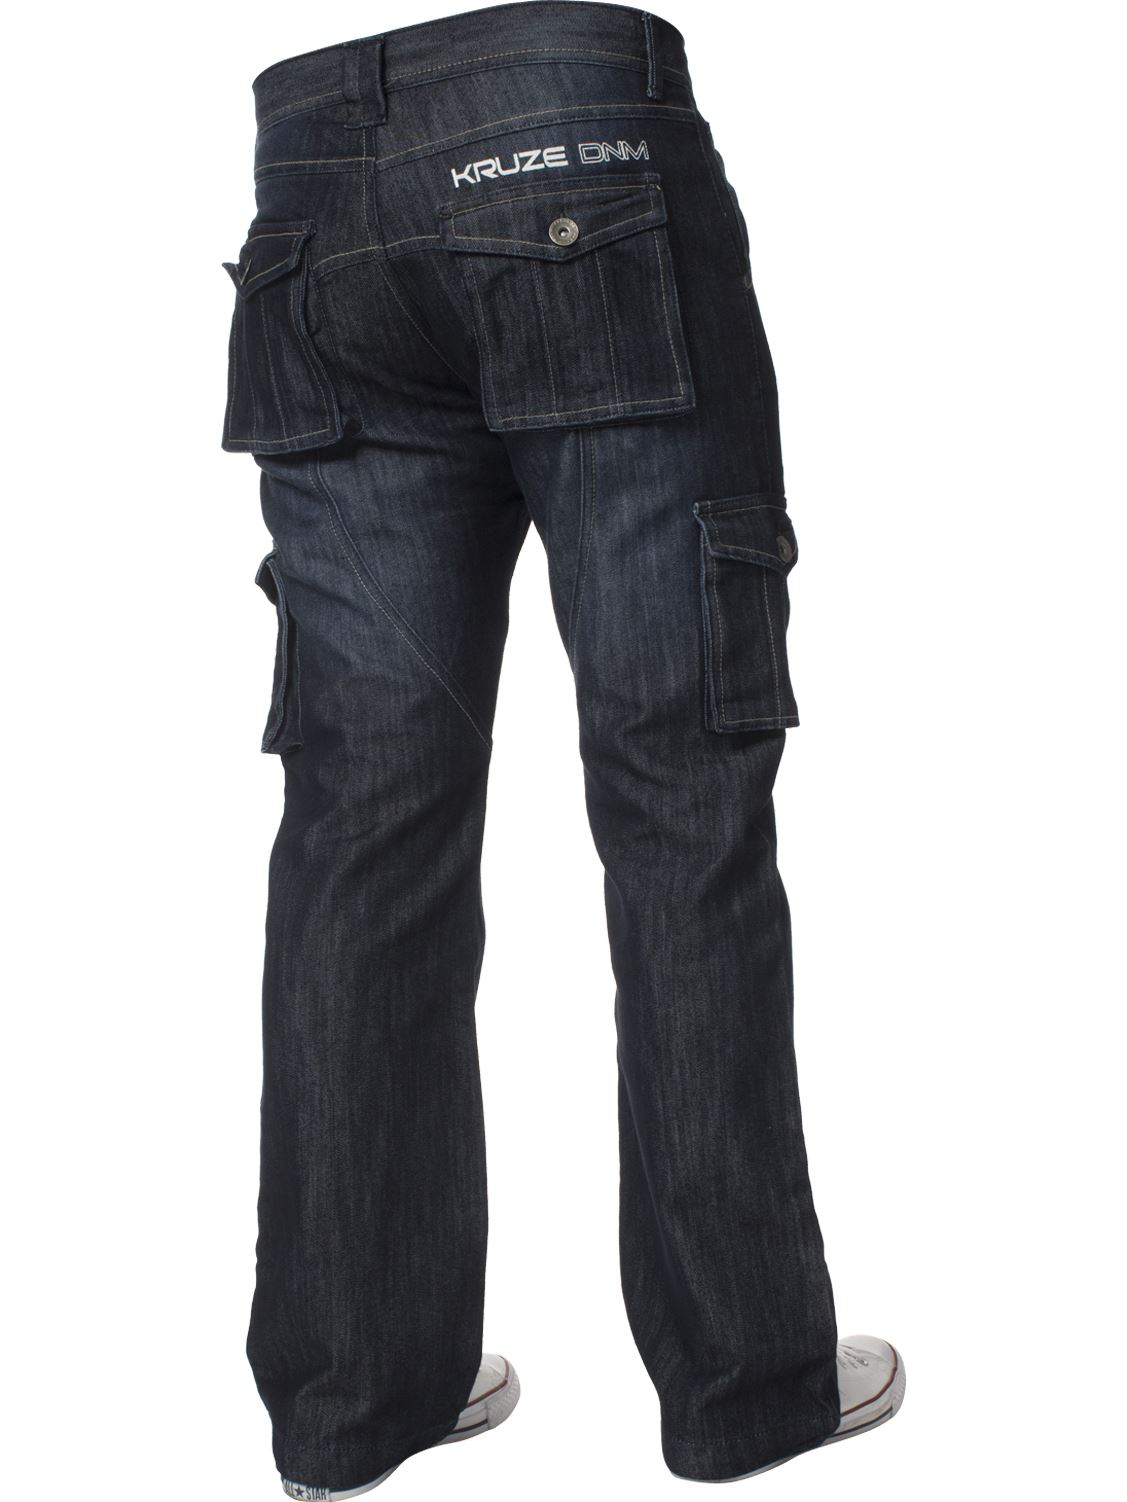 Mens-Cargo-Combat-Trousers-Jeans-Heavy-Duty-Work-Casual-Pants-Big-Tall-All-Sizes thumbnail 13